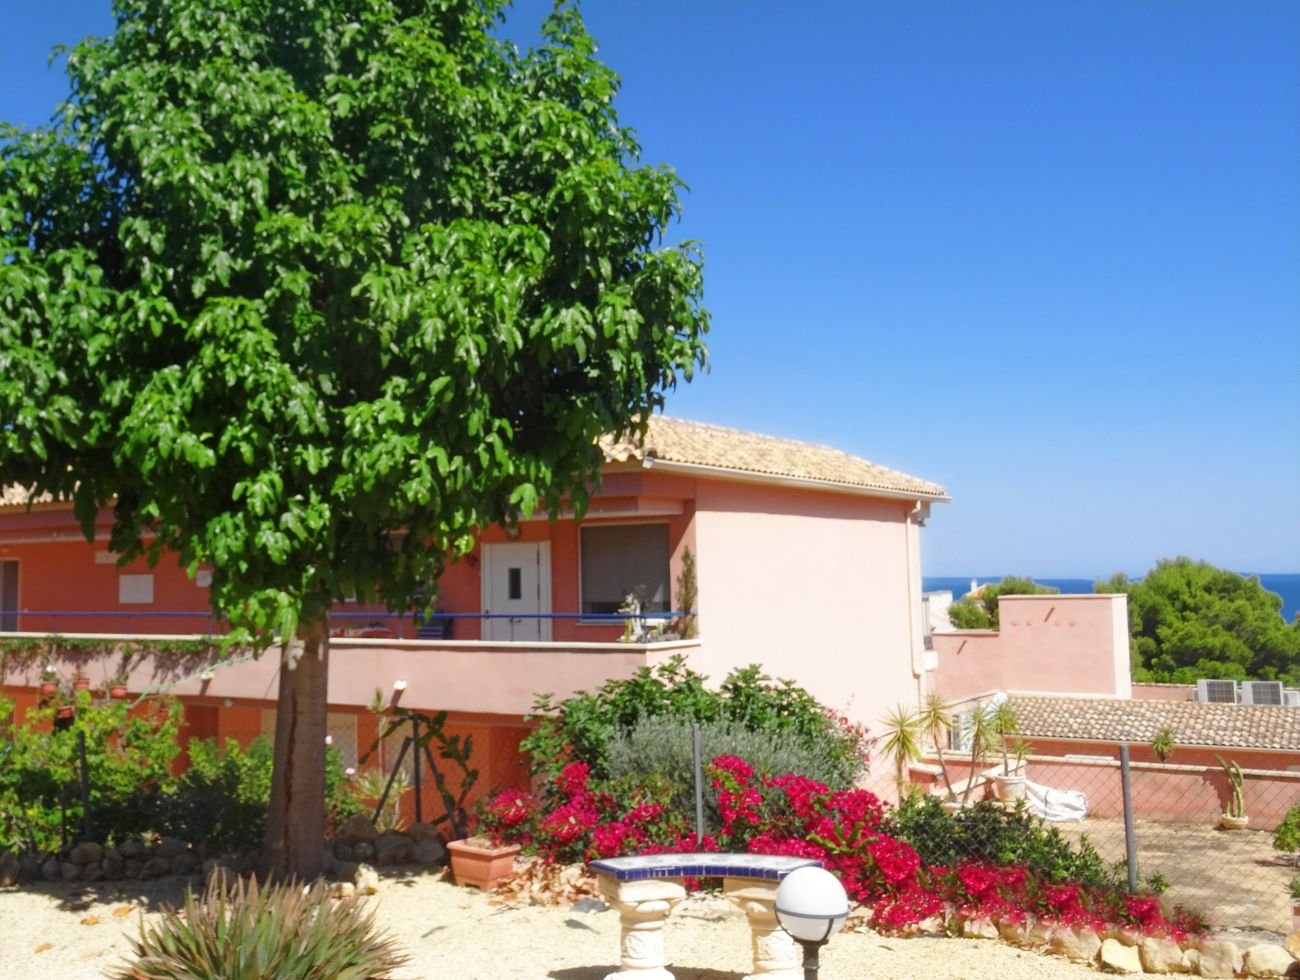 Lovely and cheerful apartment in La Nucia, on the Costa Blanca, Spain for 6 persons